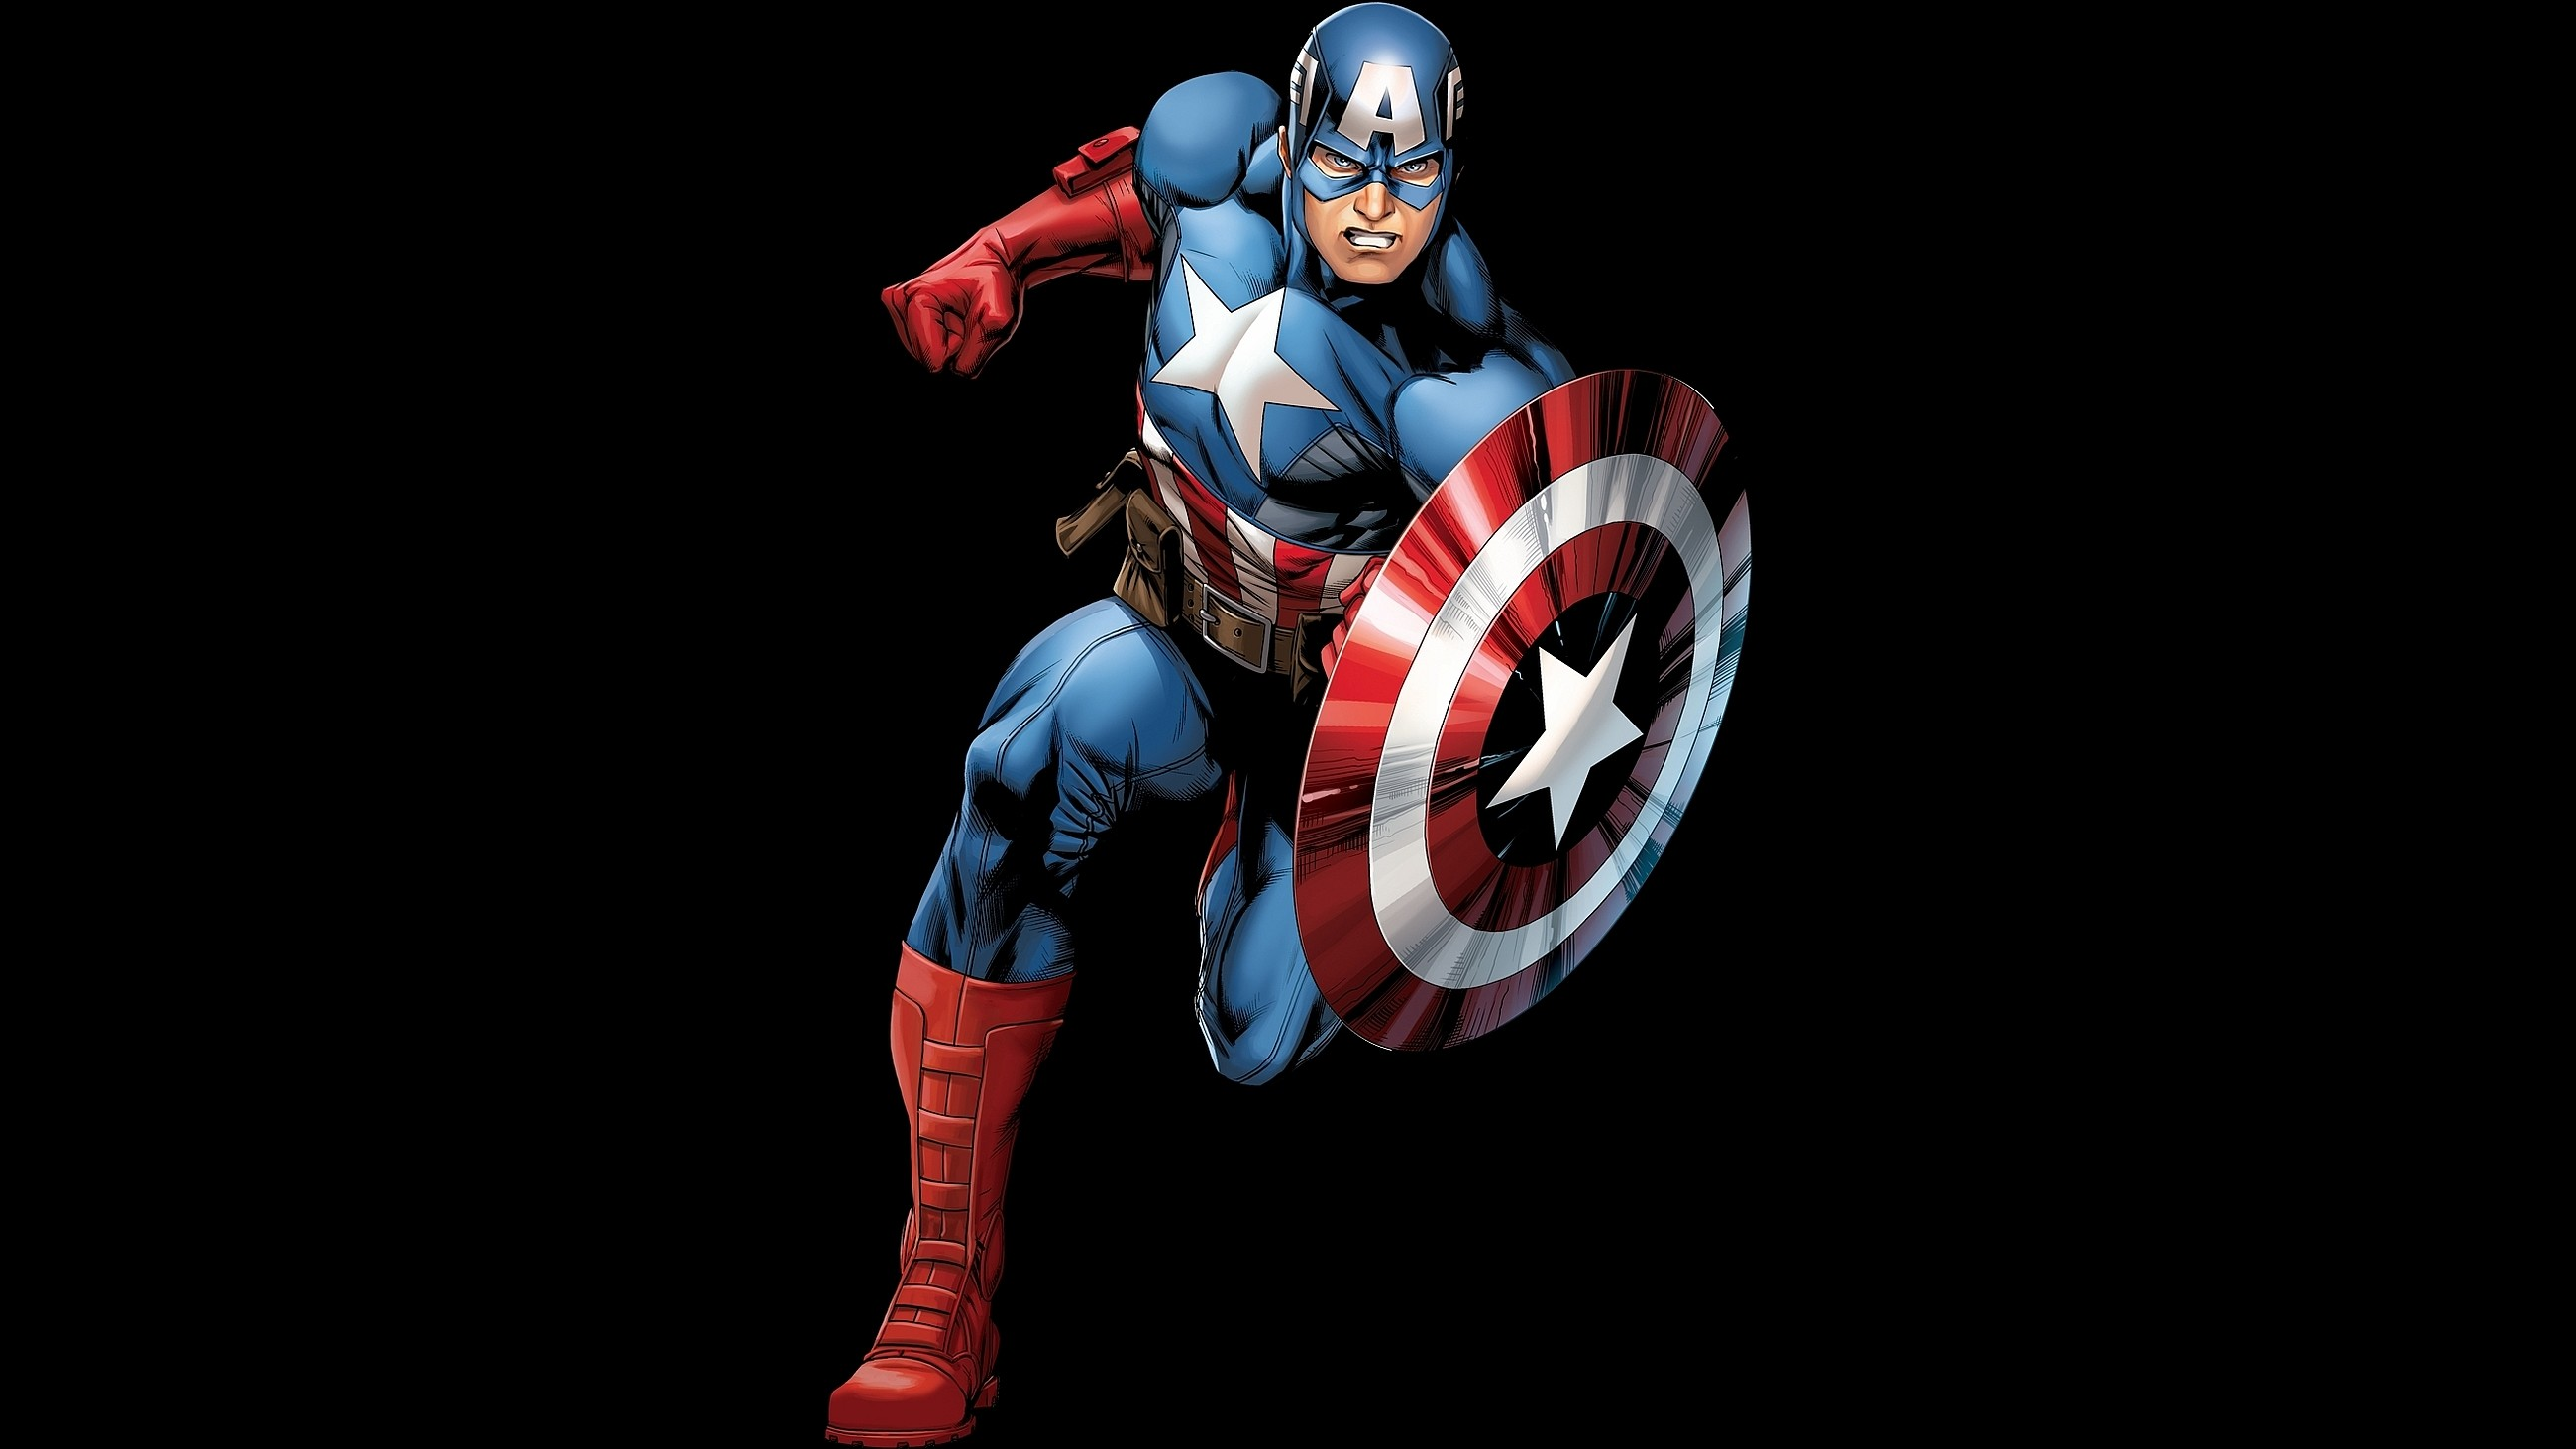 Captain America HD Wallpapers Backgrounds Wallpaper